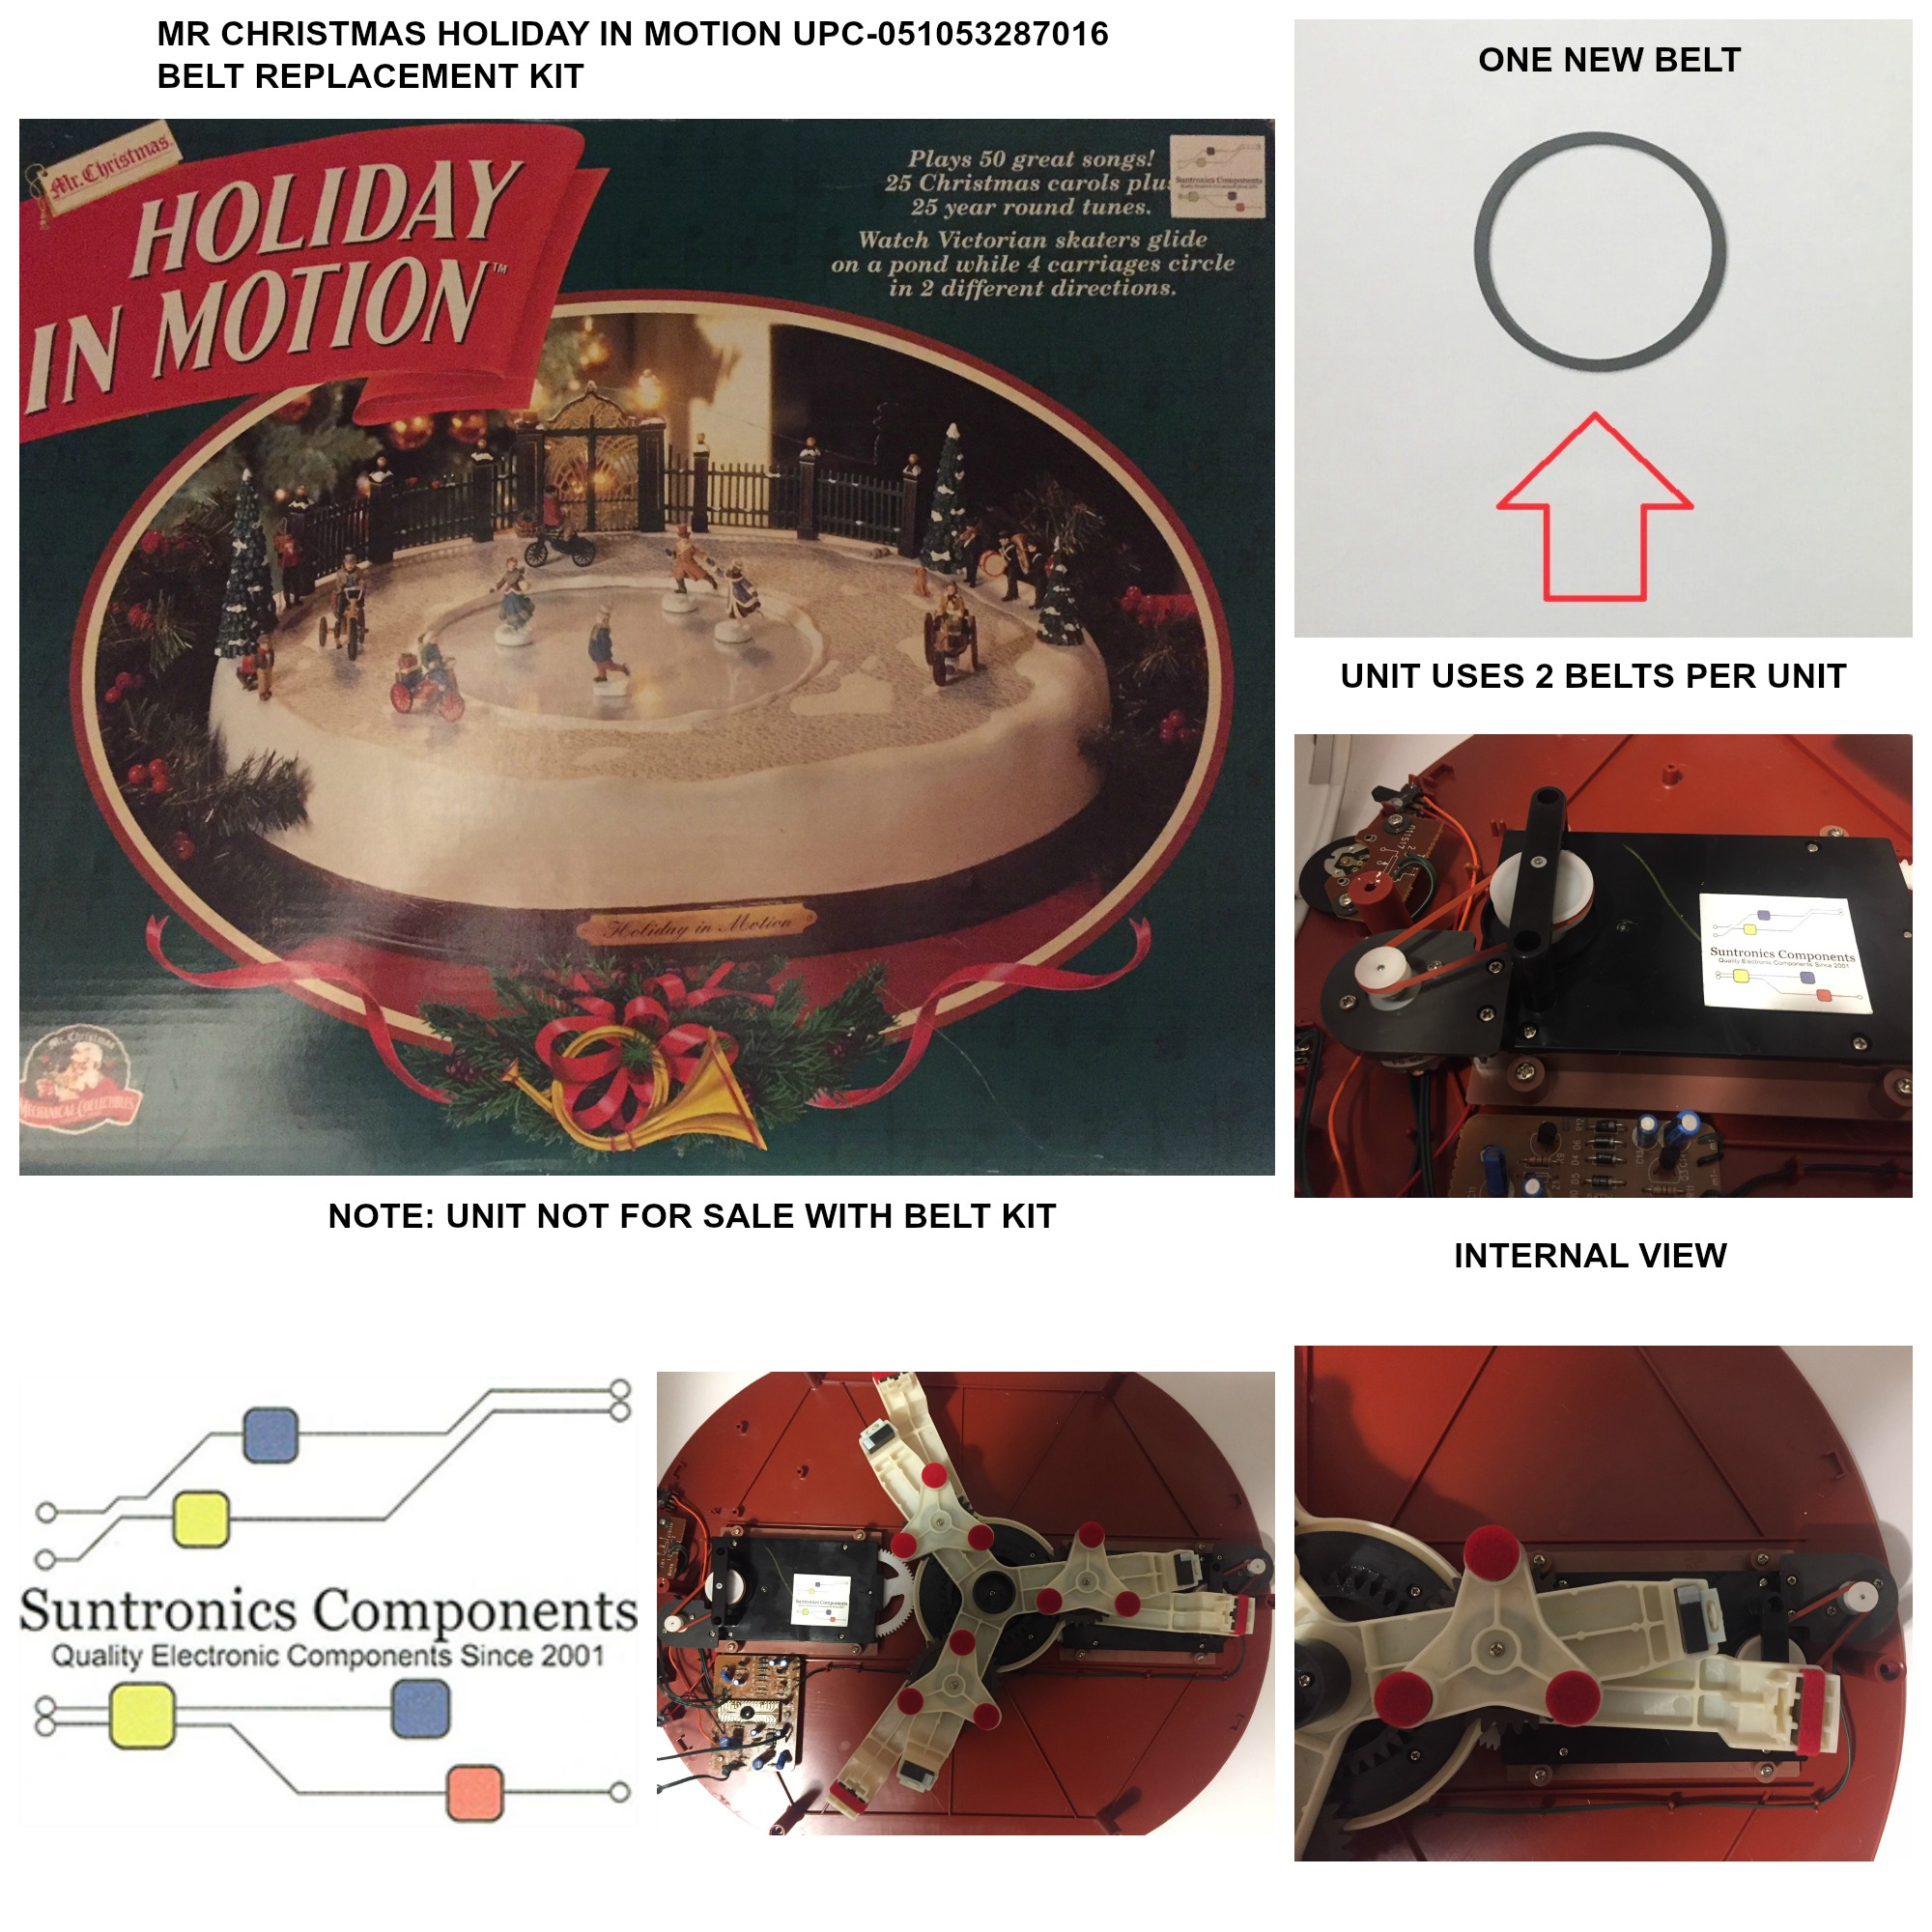 PicMonkey Image MR CHRISTMAS HOLIDAY IN MOTION UPC CODE 051053287016 BELT  KIT